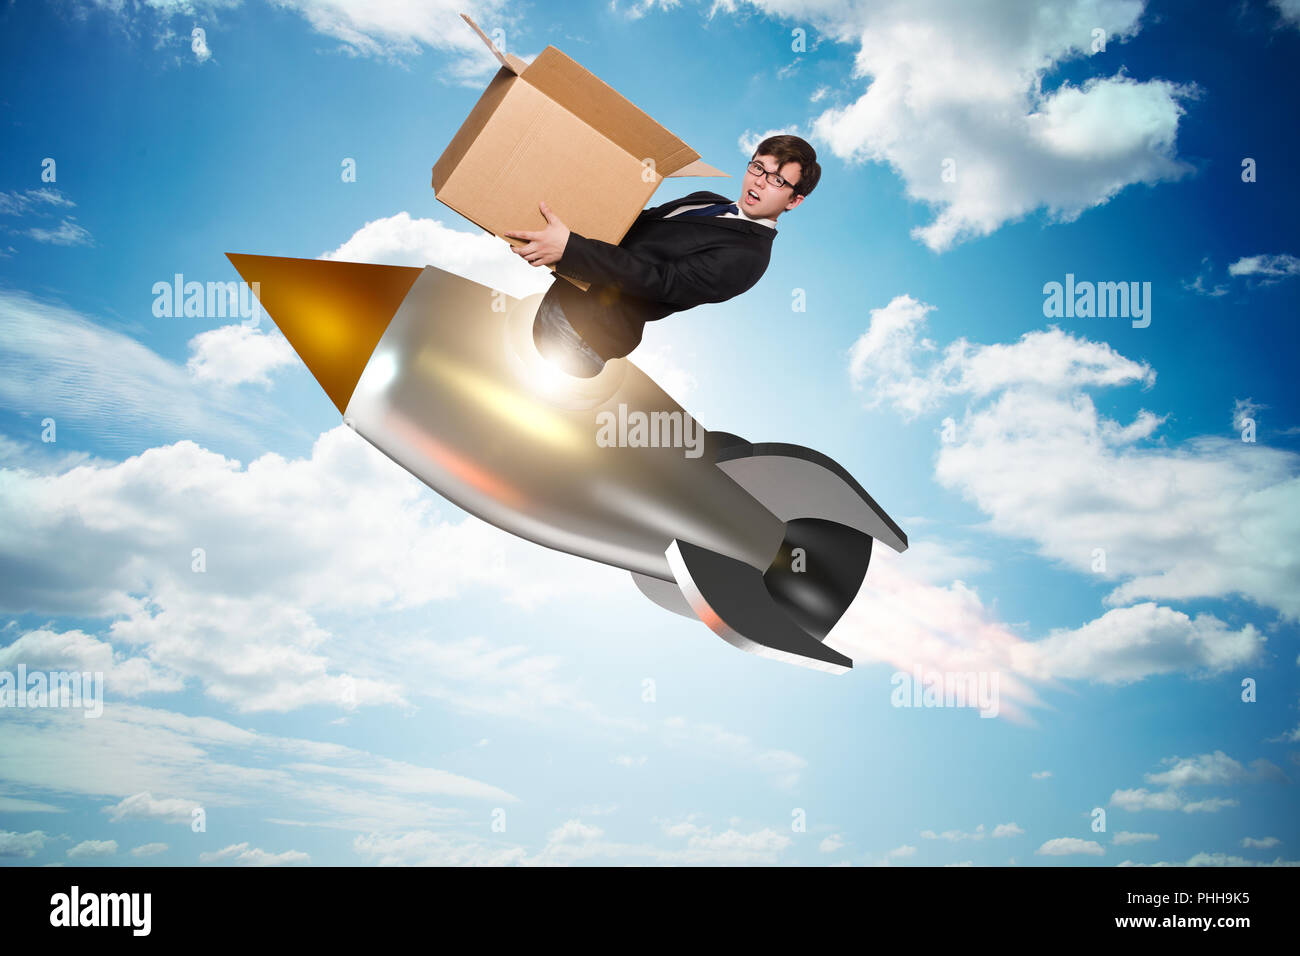 Businessman in fast delivery service Stock Photo